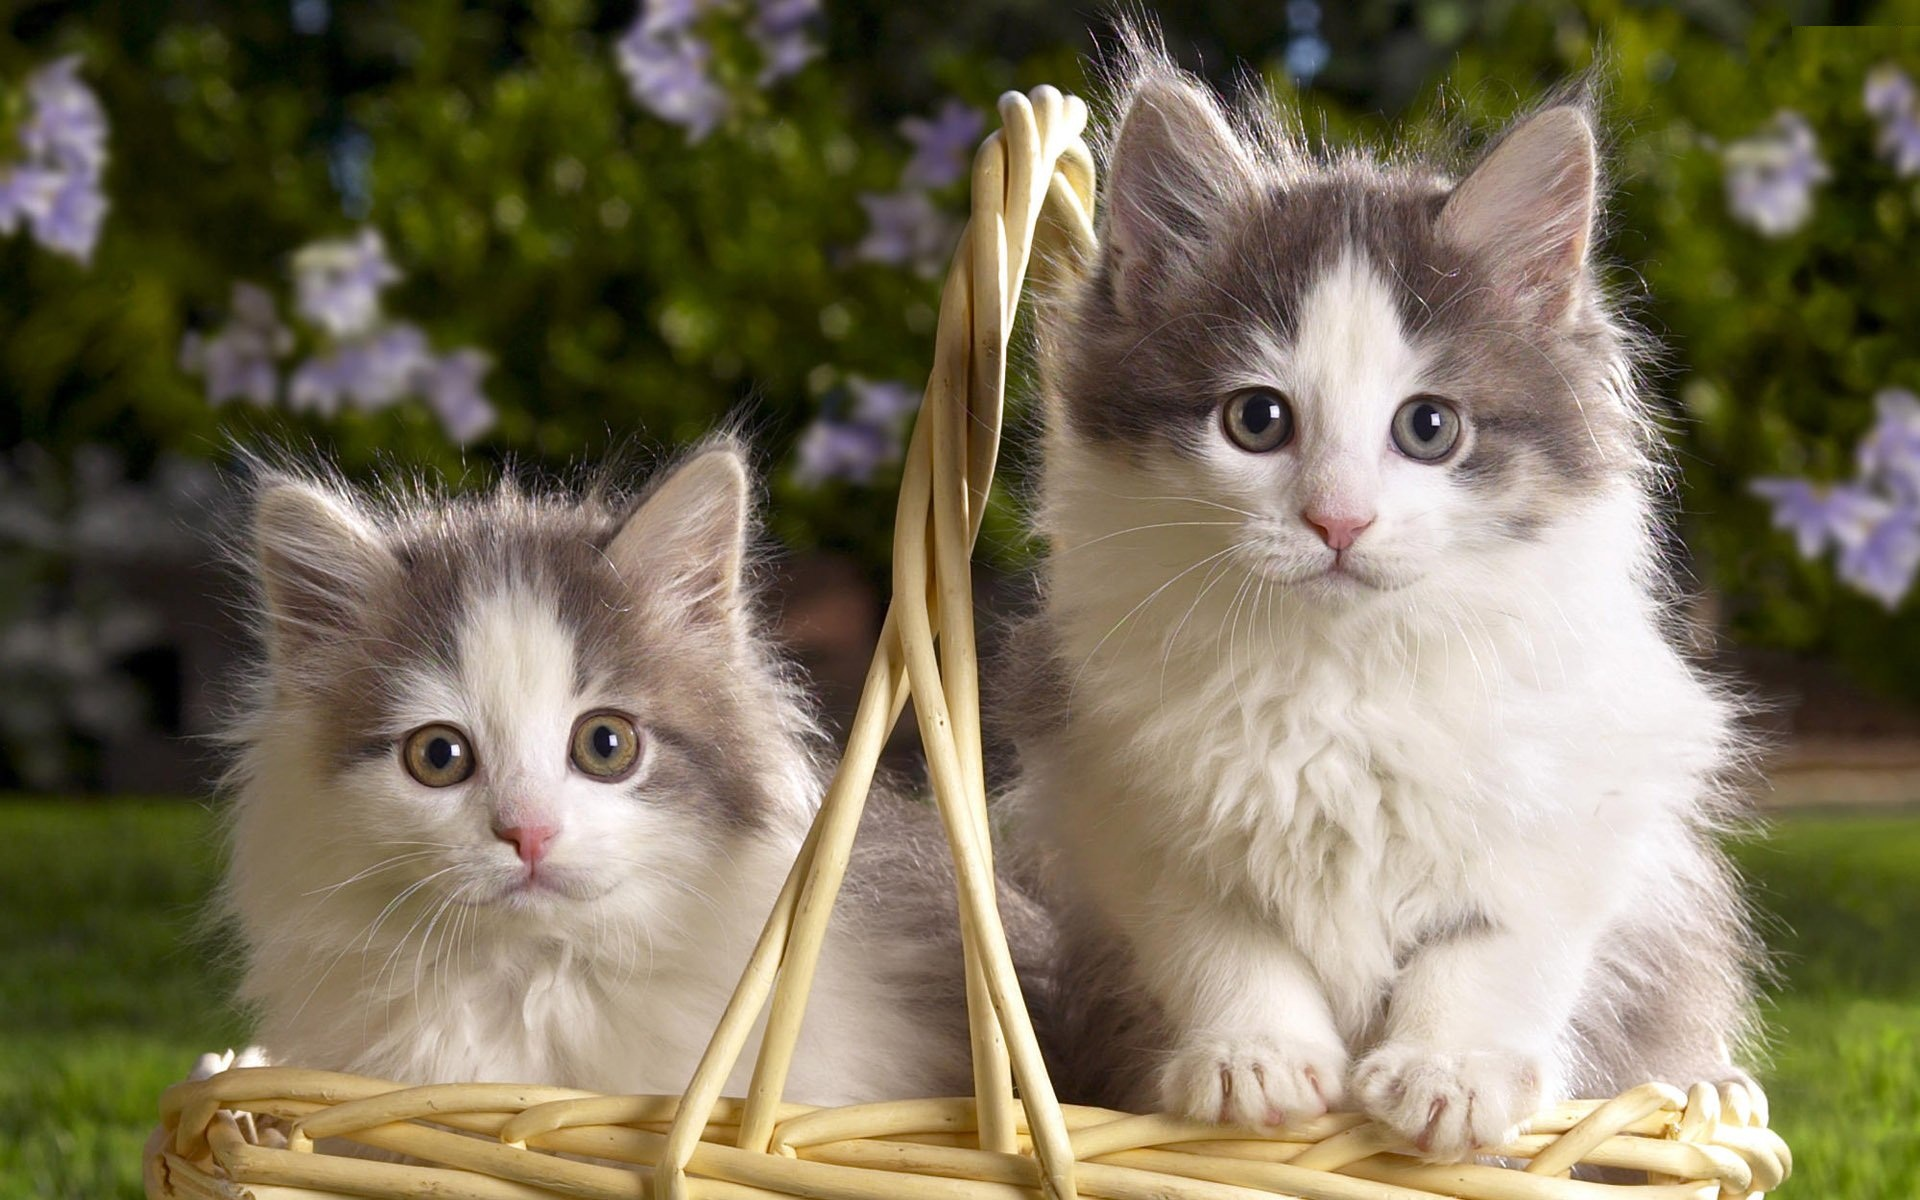 Two white and gray fluffy kitten in the basket